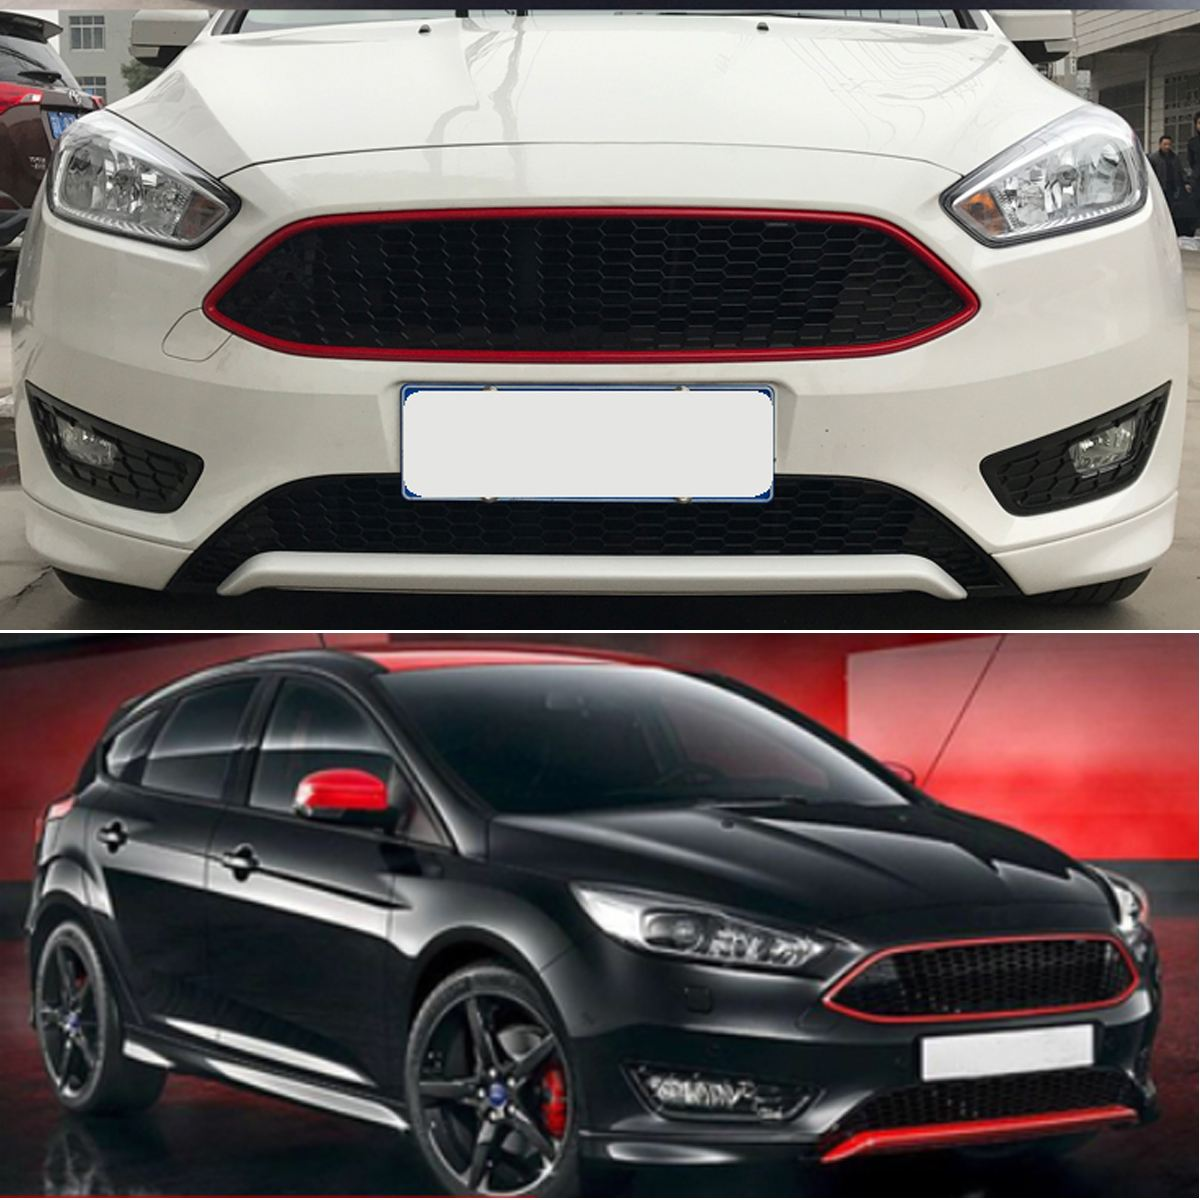 Spary Painted Honeycombed Nest Bee Grille Grill For Ford For Focus